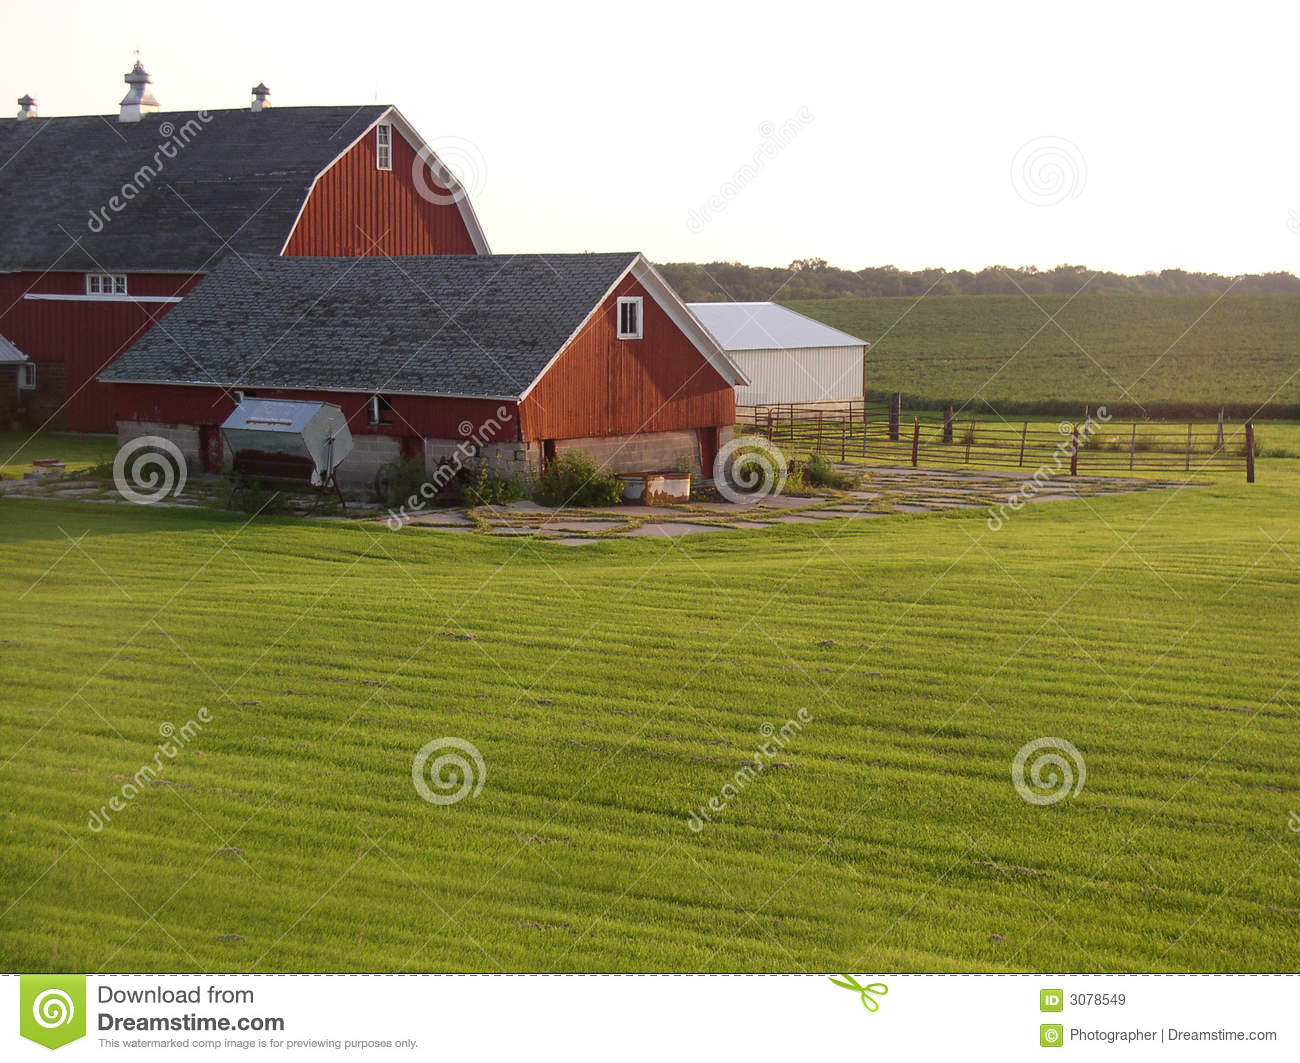 Farm building in the country